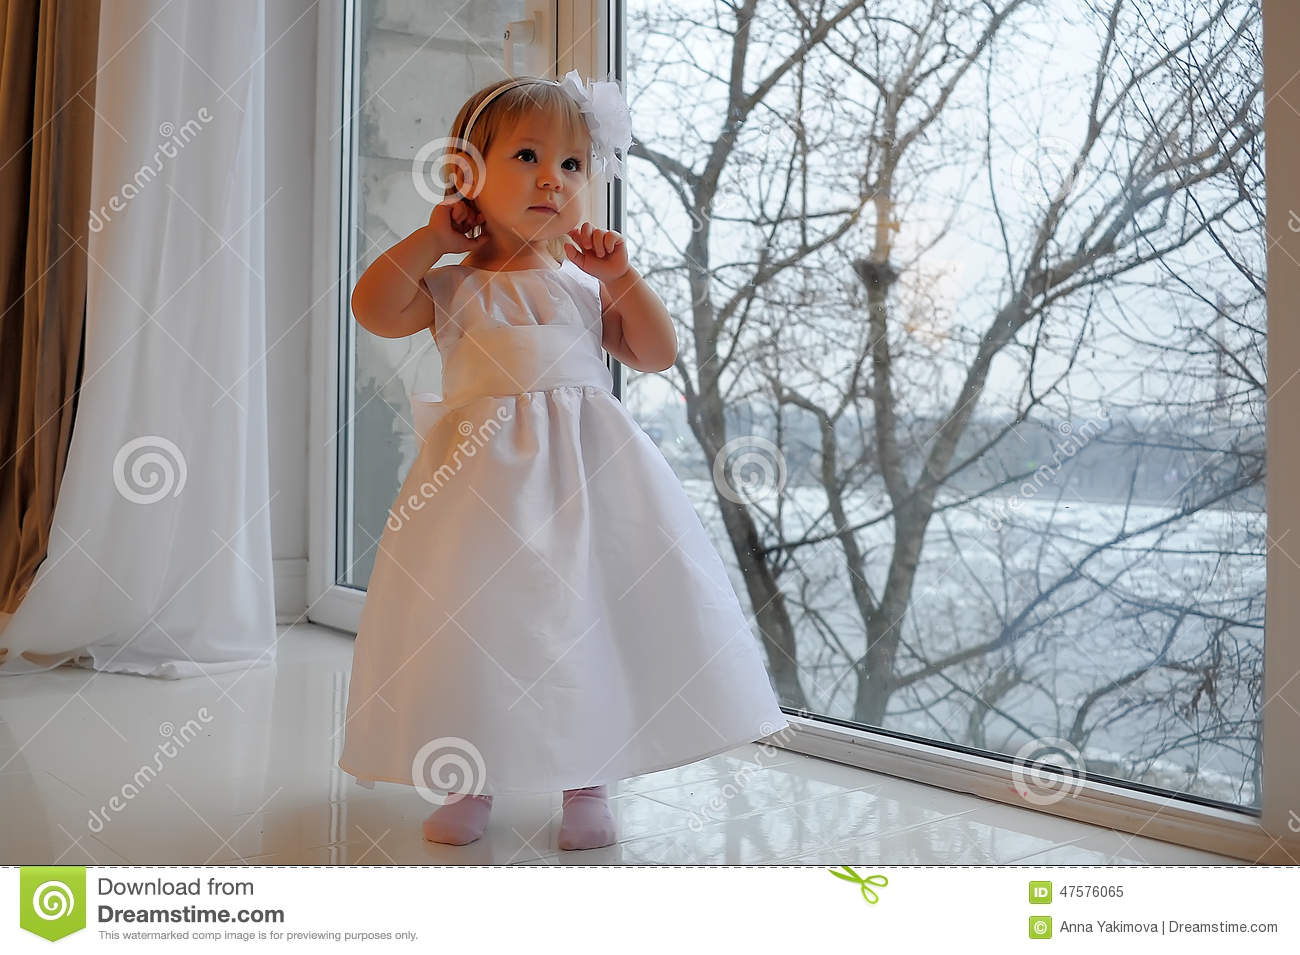 Girl In White Dress Next To A Large Window Stock Image - Image of ...